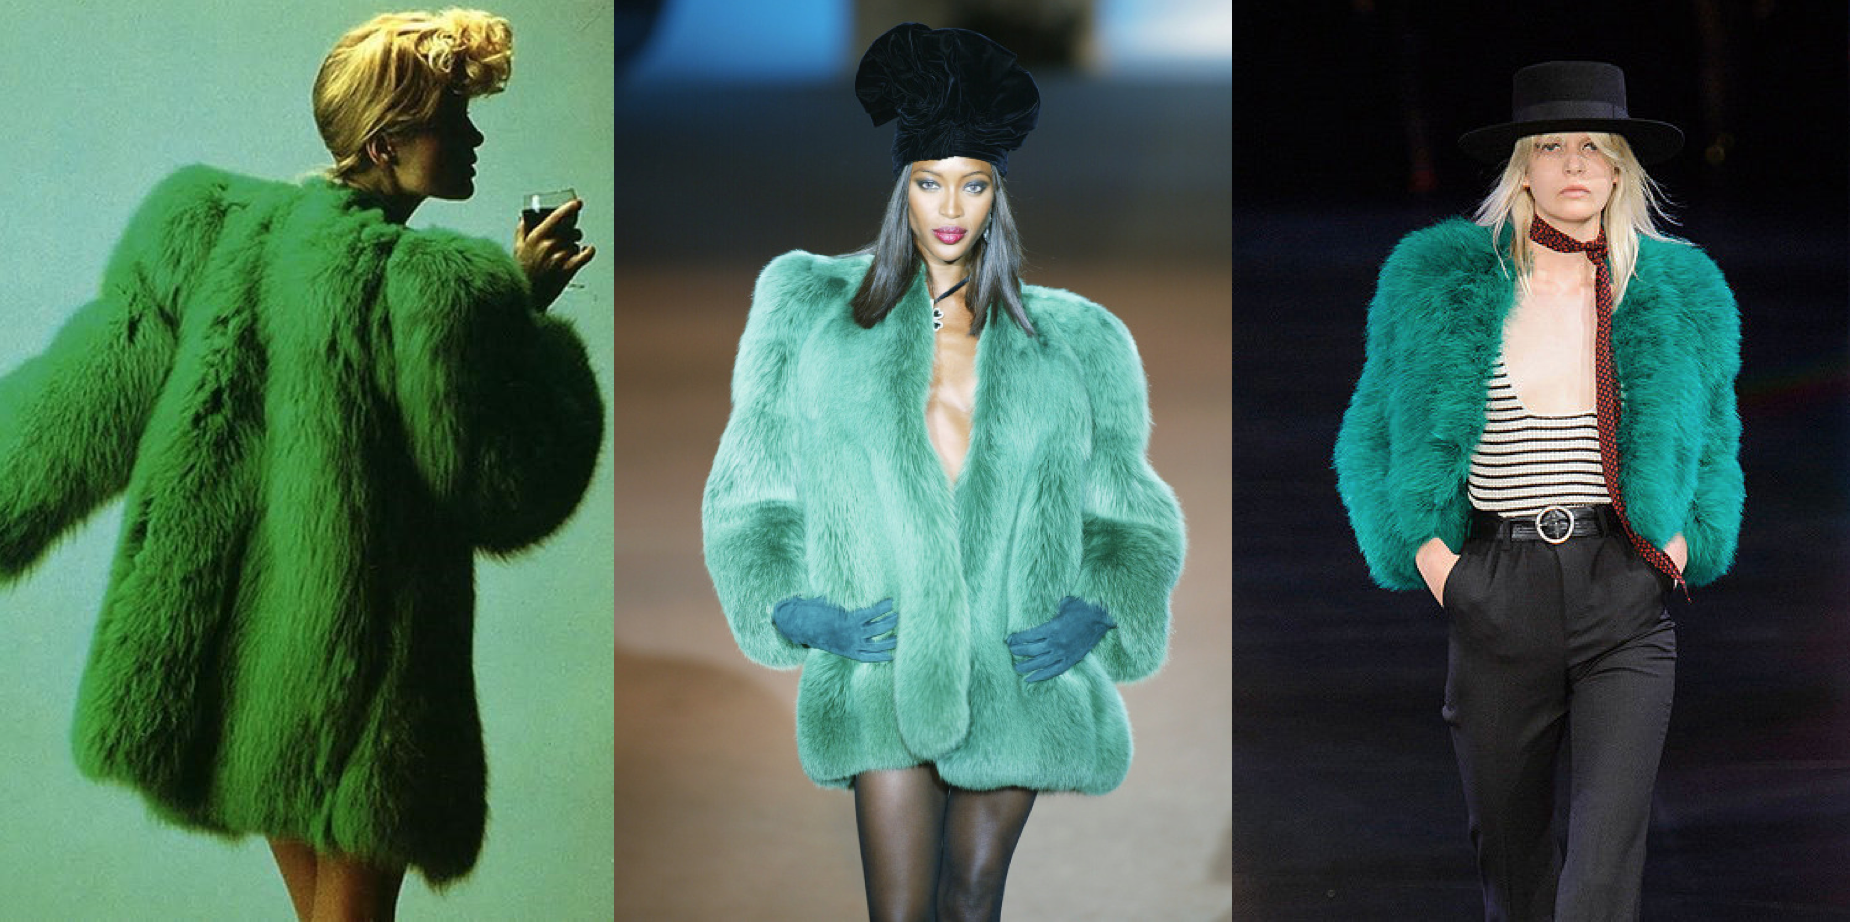 YSL 1971 (left), 2002 (center) and Spring/Summer 2015 (right)